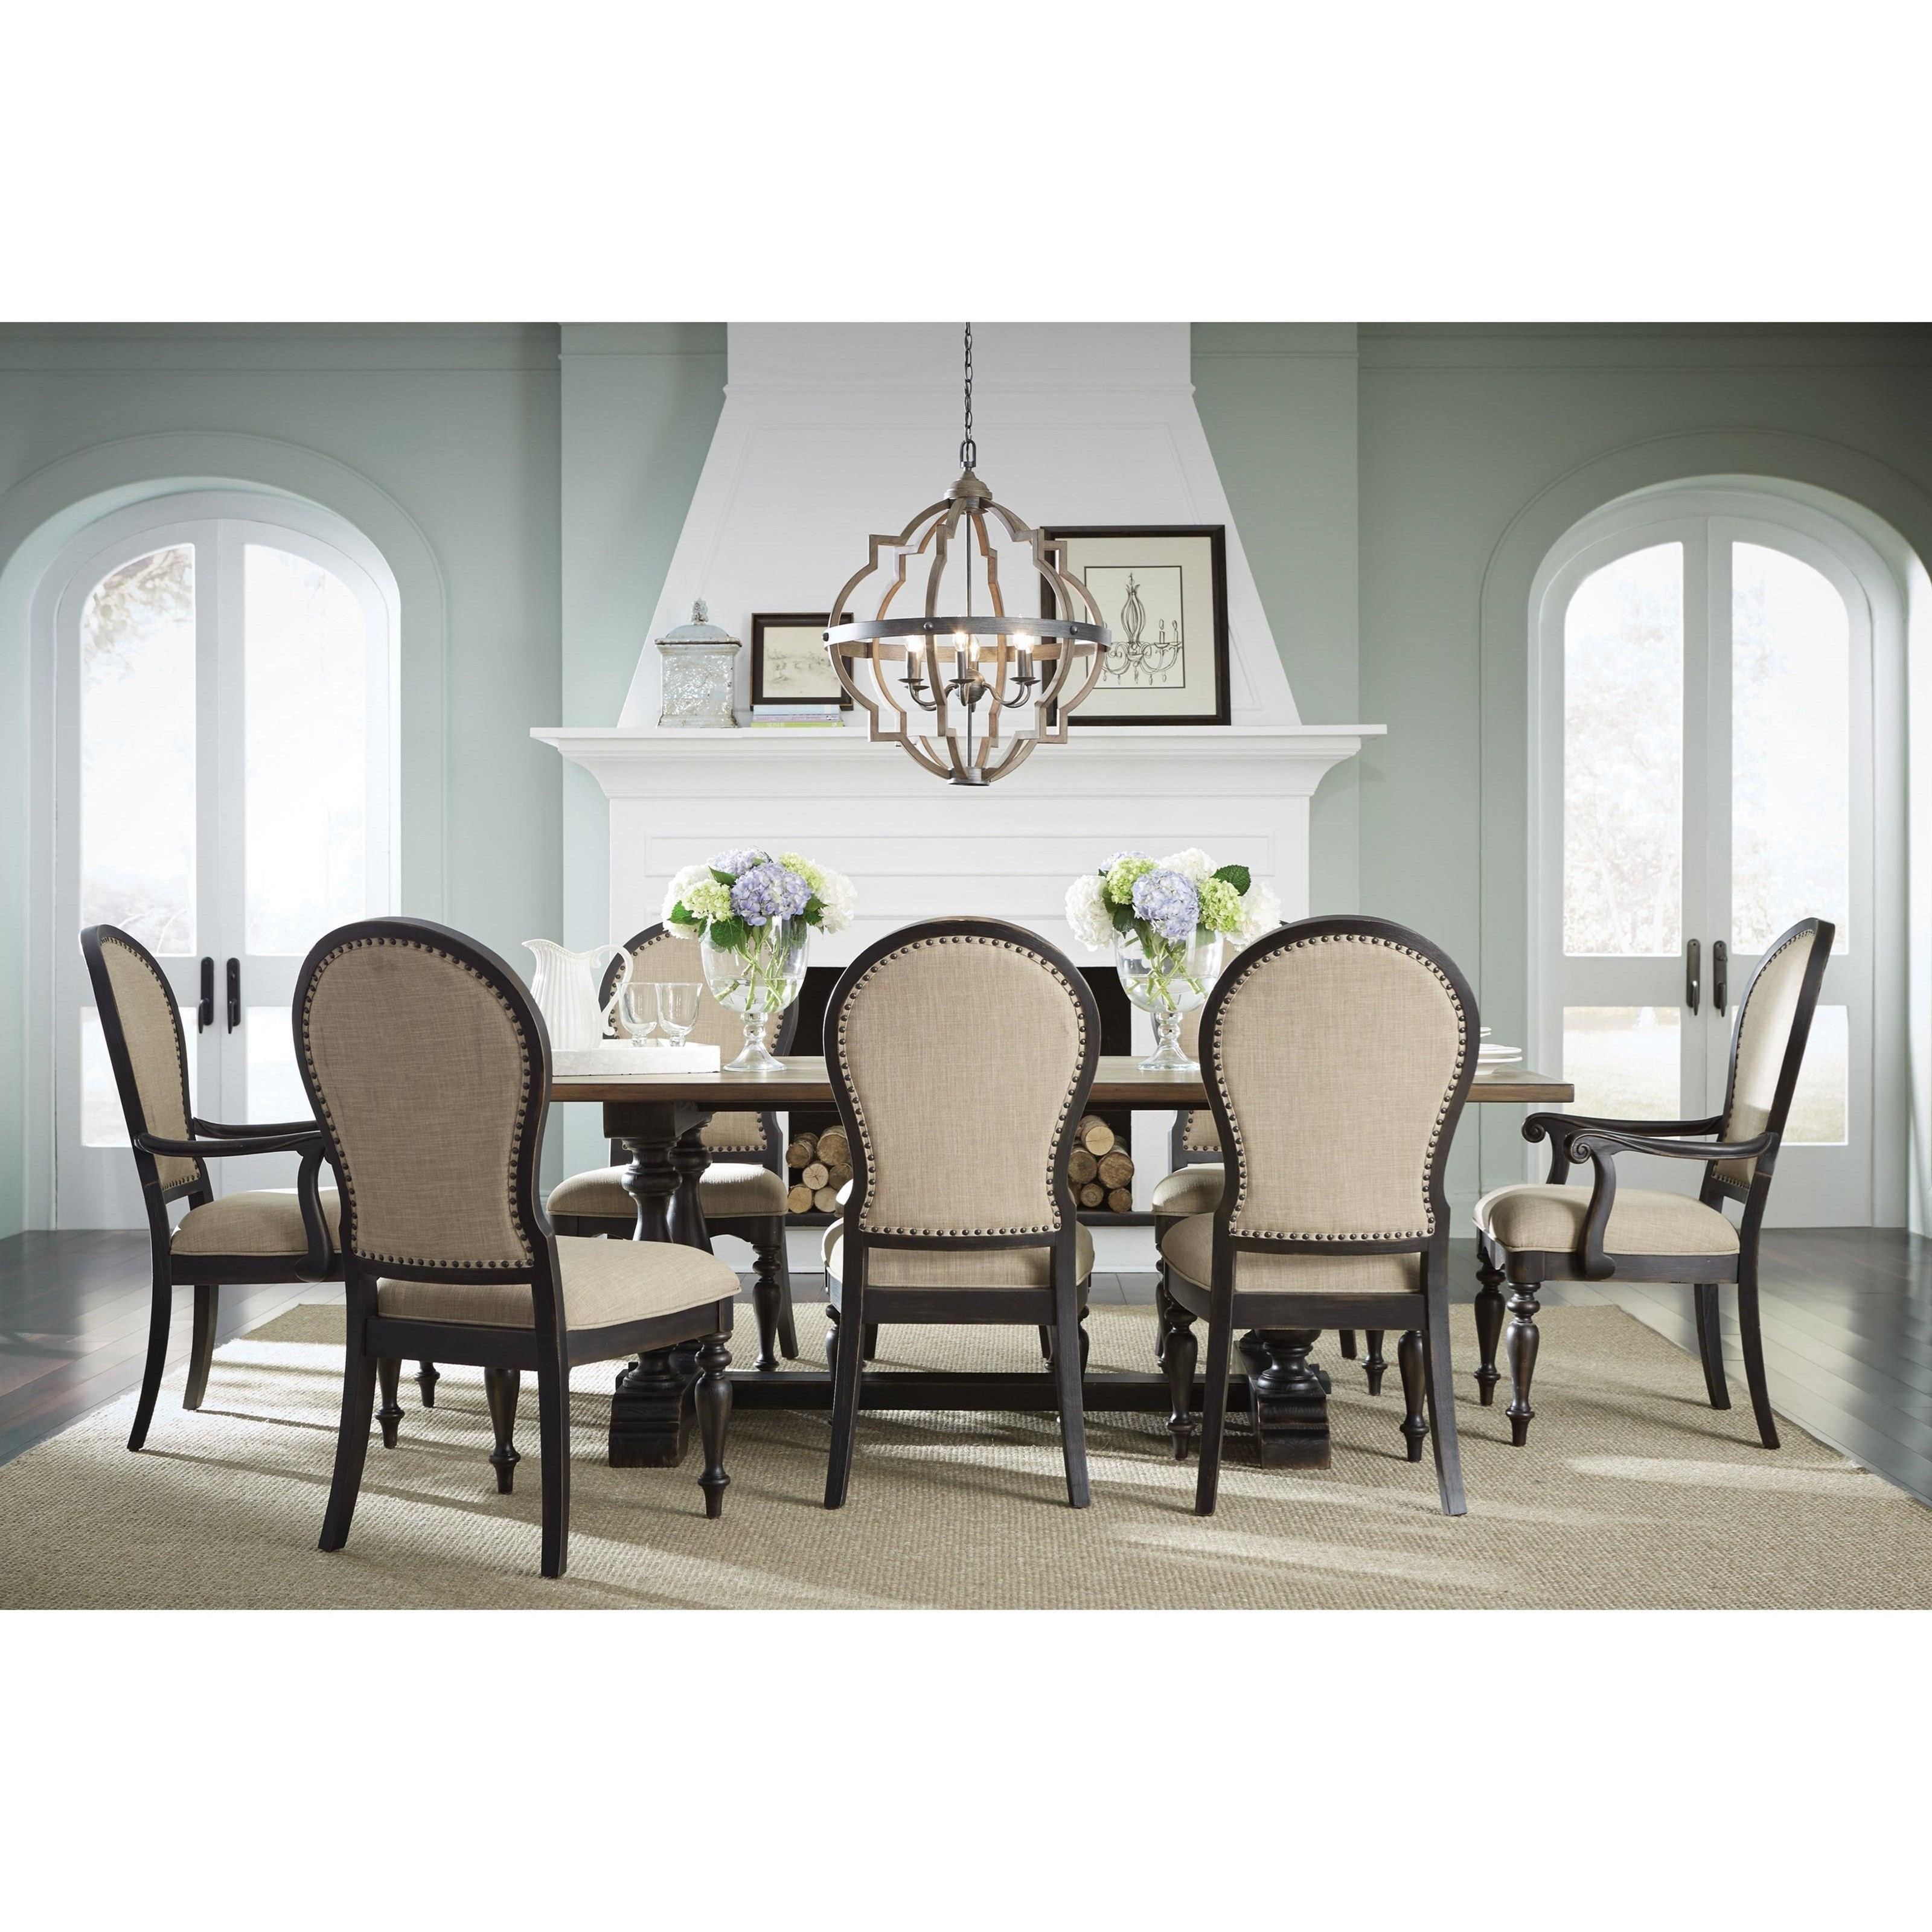 Standard Furniture Cambria 12284 Two Tone Upholstered Side